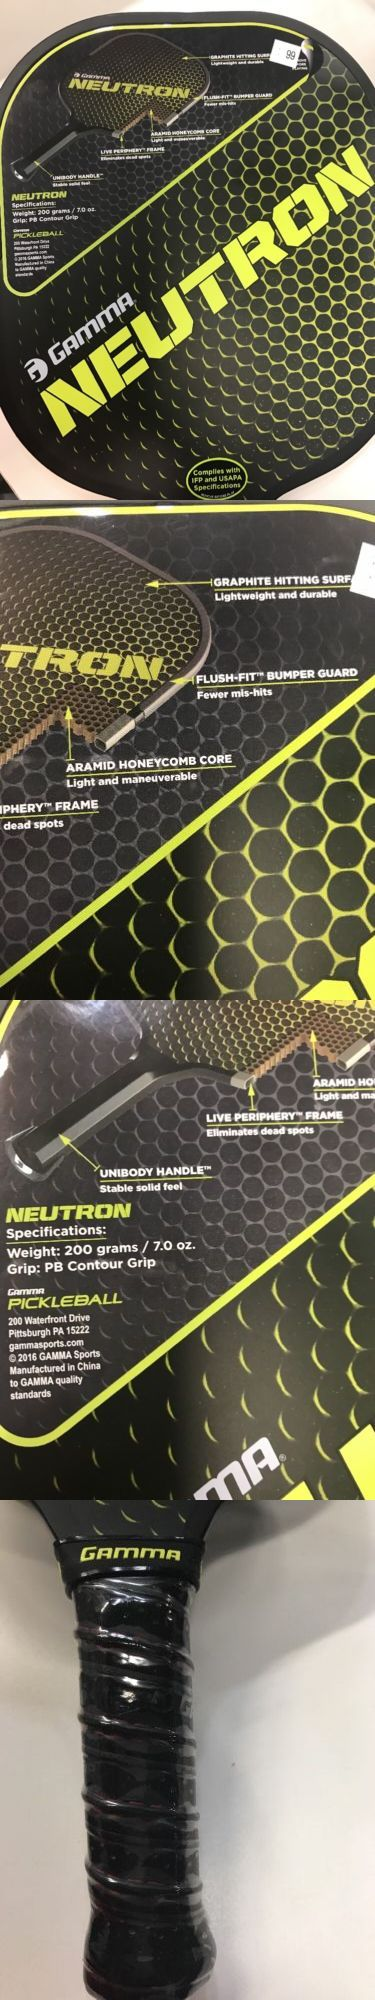 Other Tennis and Racquet Sports 159135: New Gamma Neutron Graphite Pickleball Paddle 7Oz Lightweight BUY IT NOW ONLY: $99.0